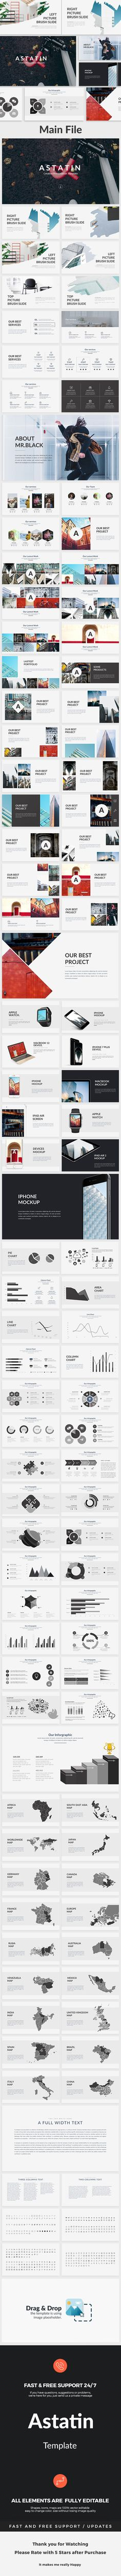 Astatin Creative Powerpoint Template — Powerpoint PPT #food presentation #bleached • Download ➝ https://graphicriver.net/item/astatin-creative-powerpoint-template/19265947?ref=pxcr